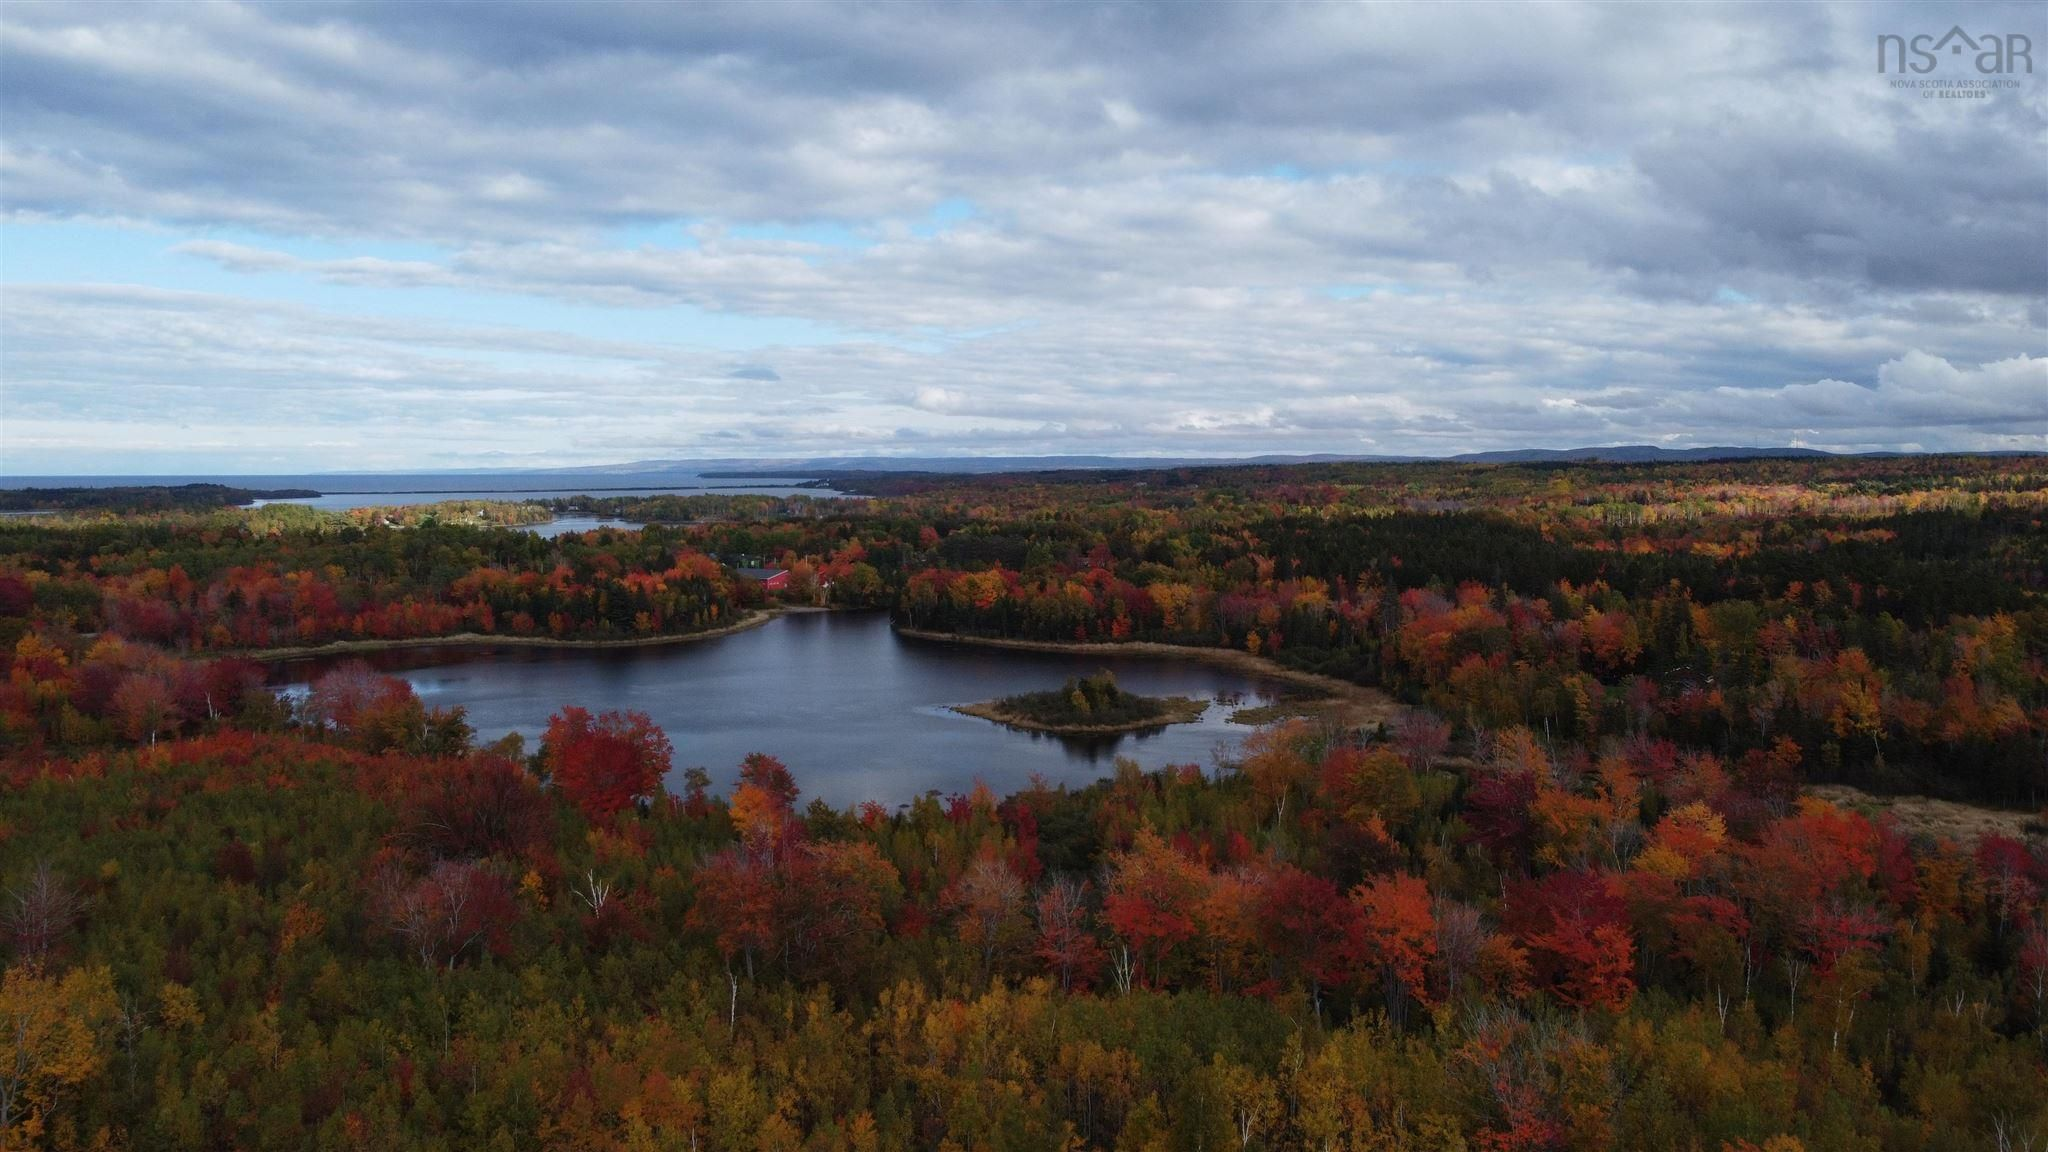 Main Photo: Lot 14 Lakeside Drive in Little Harbour: 108-Rural Pictou County Vacant Land for sale (Northern Region)  : MLS®# 202125547